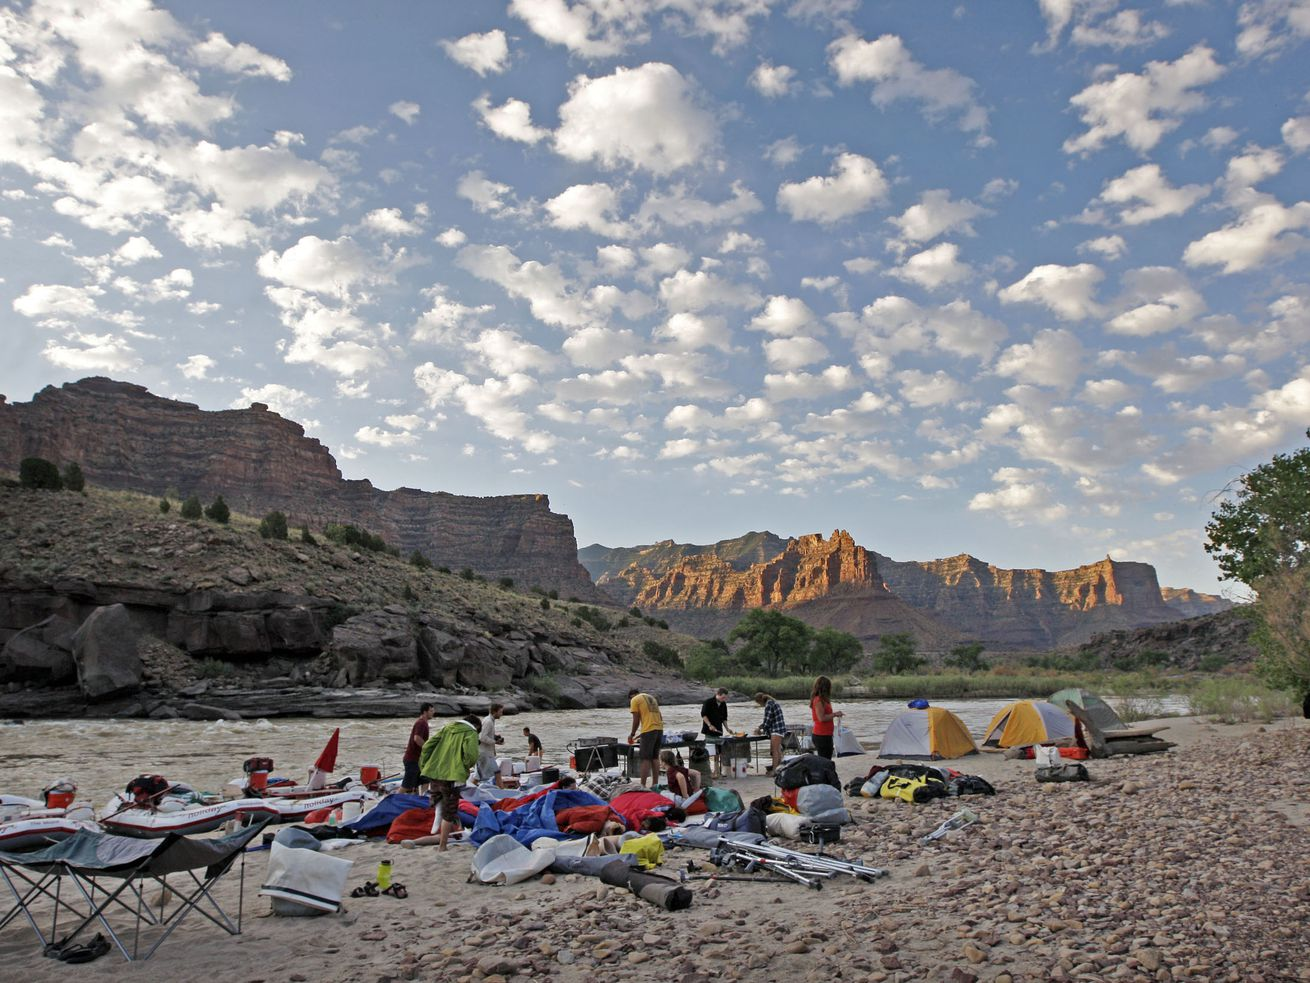 Desolation Canyon float trips: What they might cost and why that matters